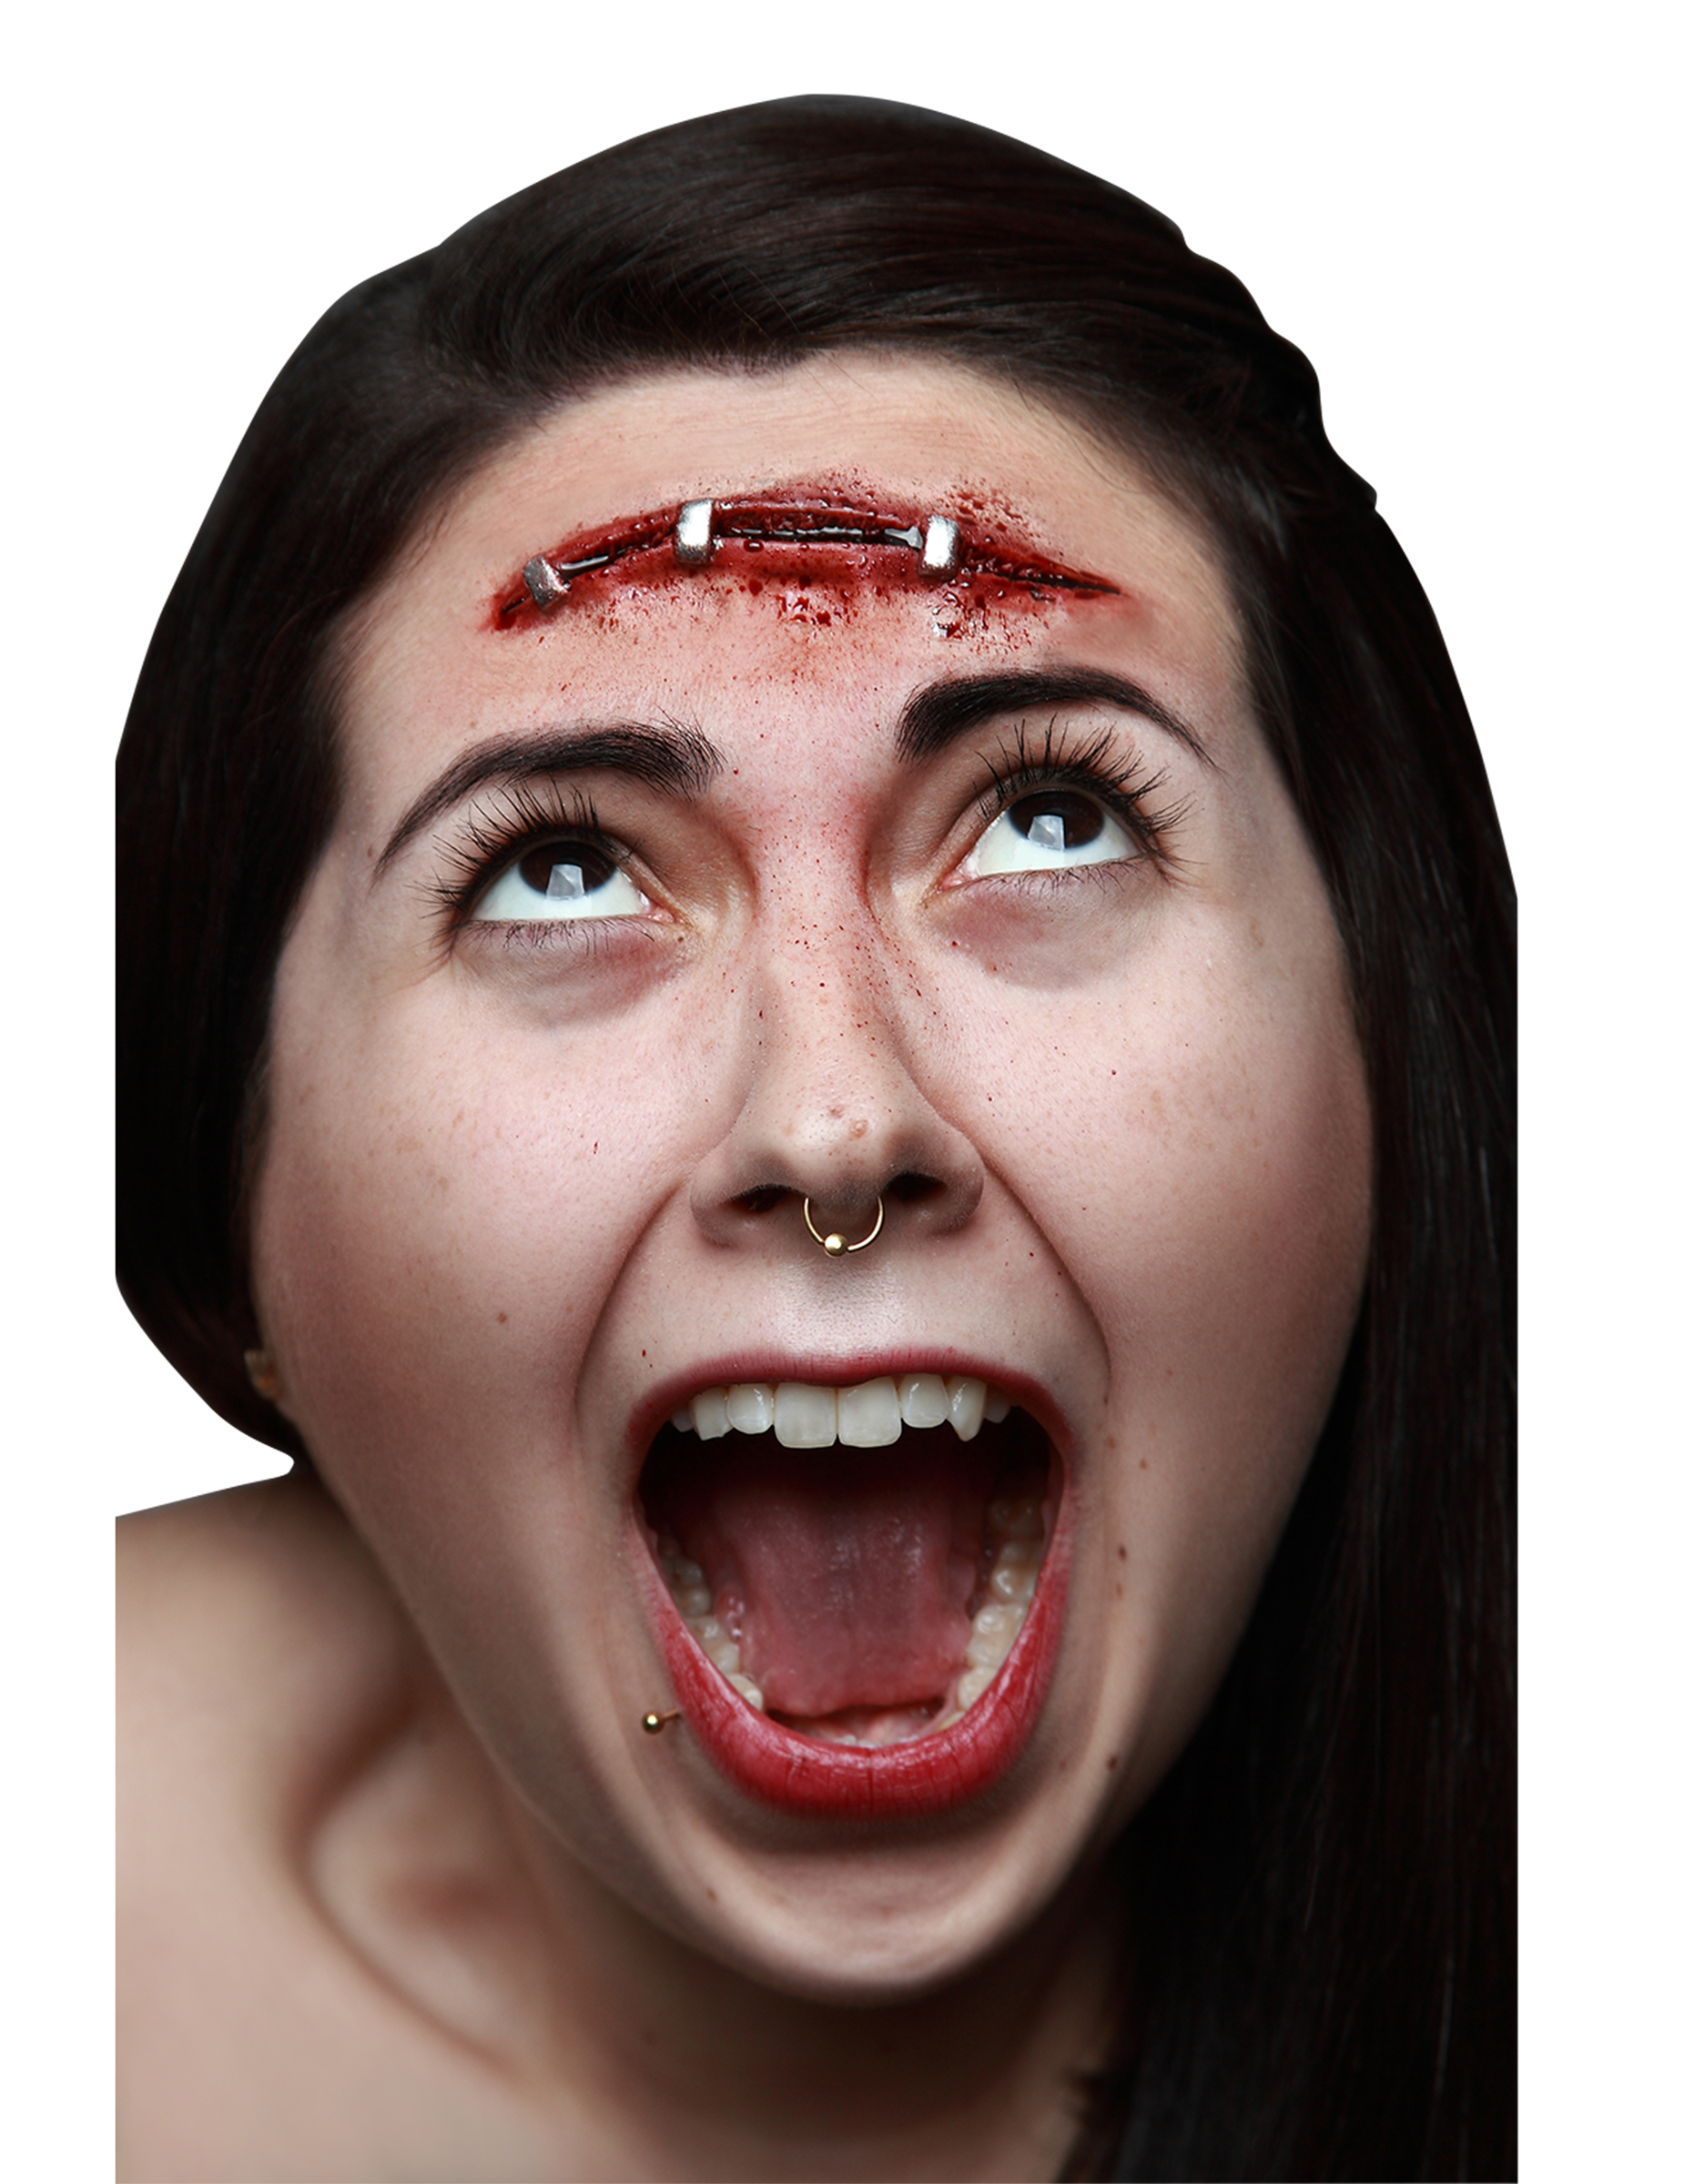 Fausse blessure cicatrice agraf e adulte halloween deguise toi achat de maquillage - Maquillage halloween cicatrice ...